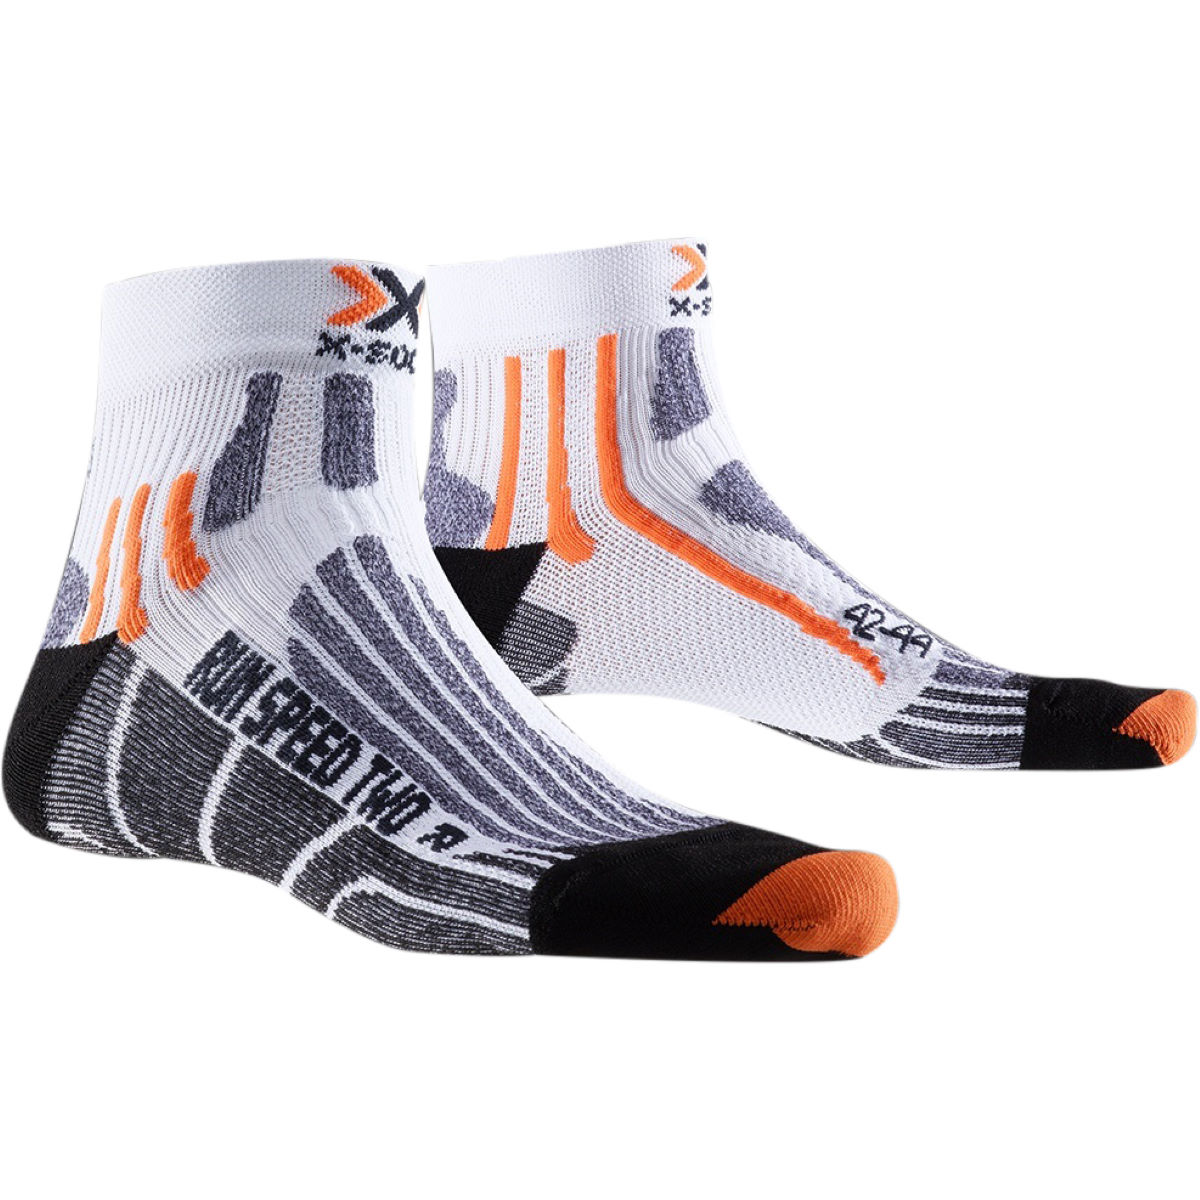 Chaussettes X-Socks Run Speed Two - 10-12 UK Blanc/Noir Chaussettes